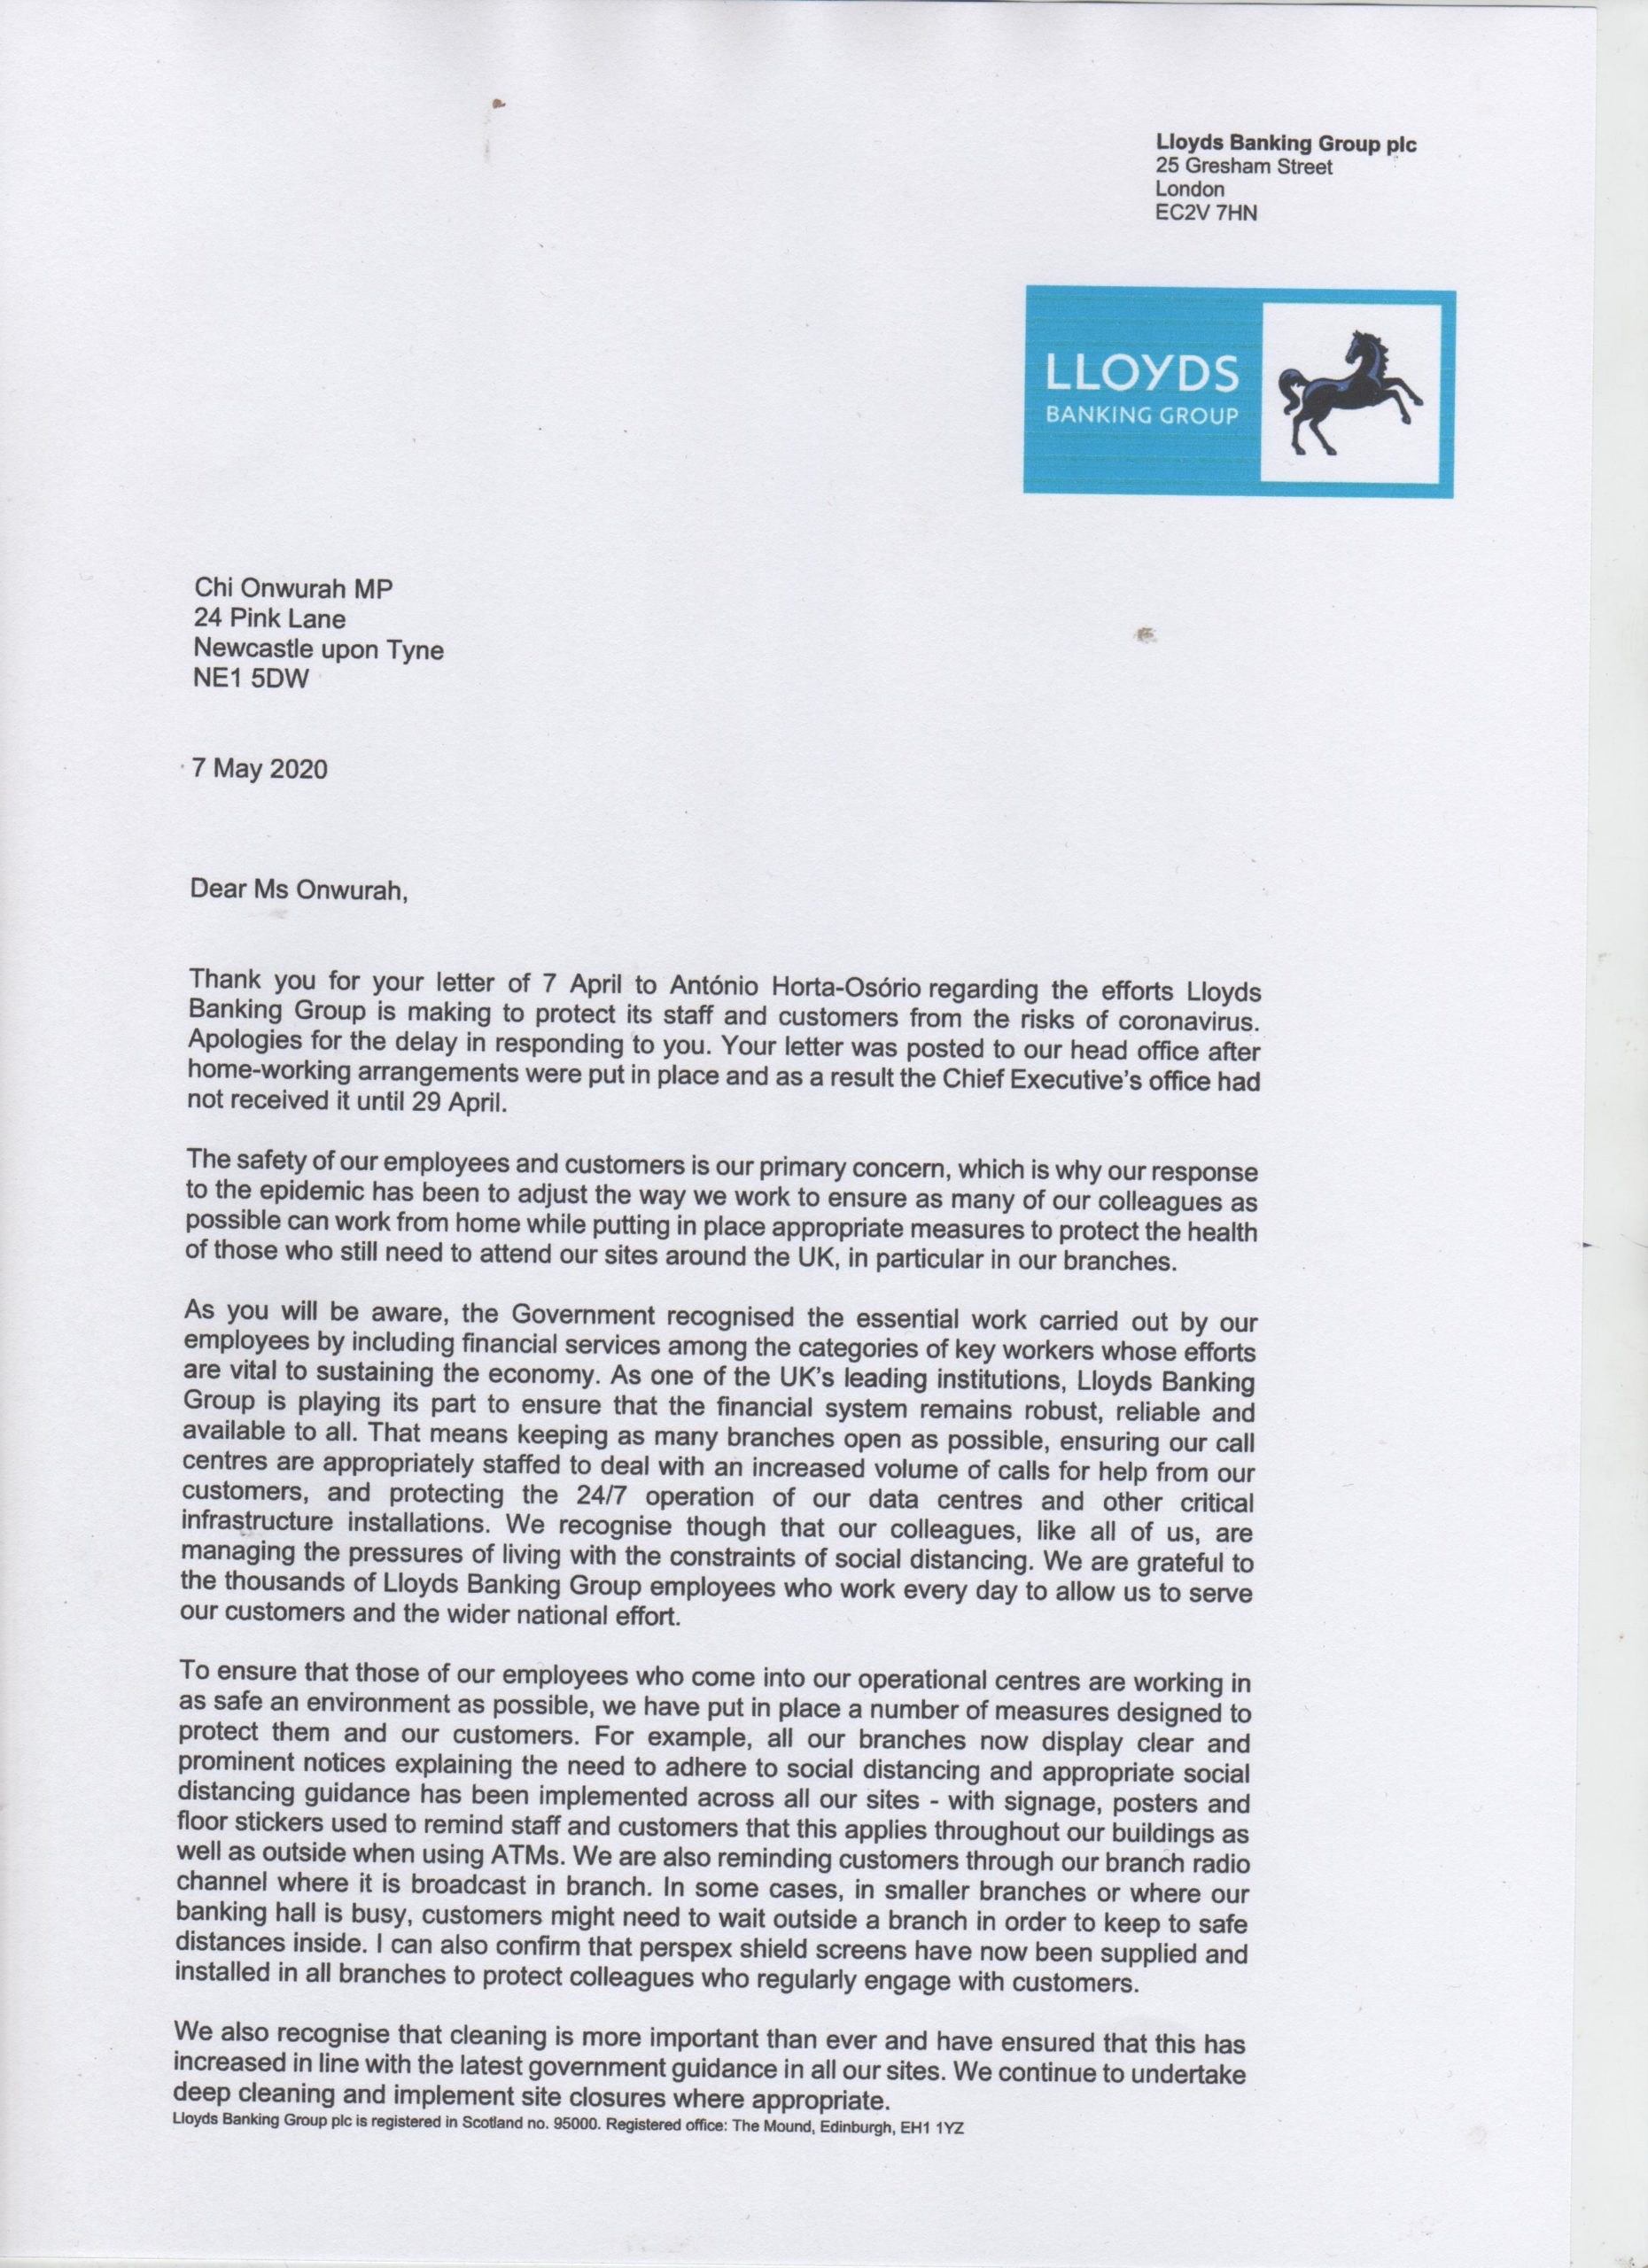 Lloyds Bank reply regarding staff and customer covid safety